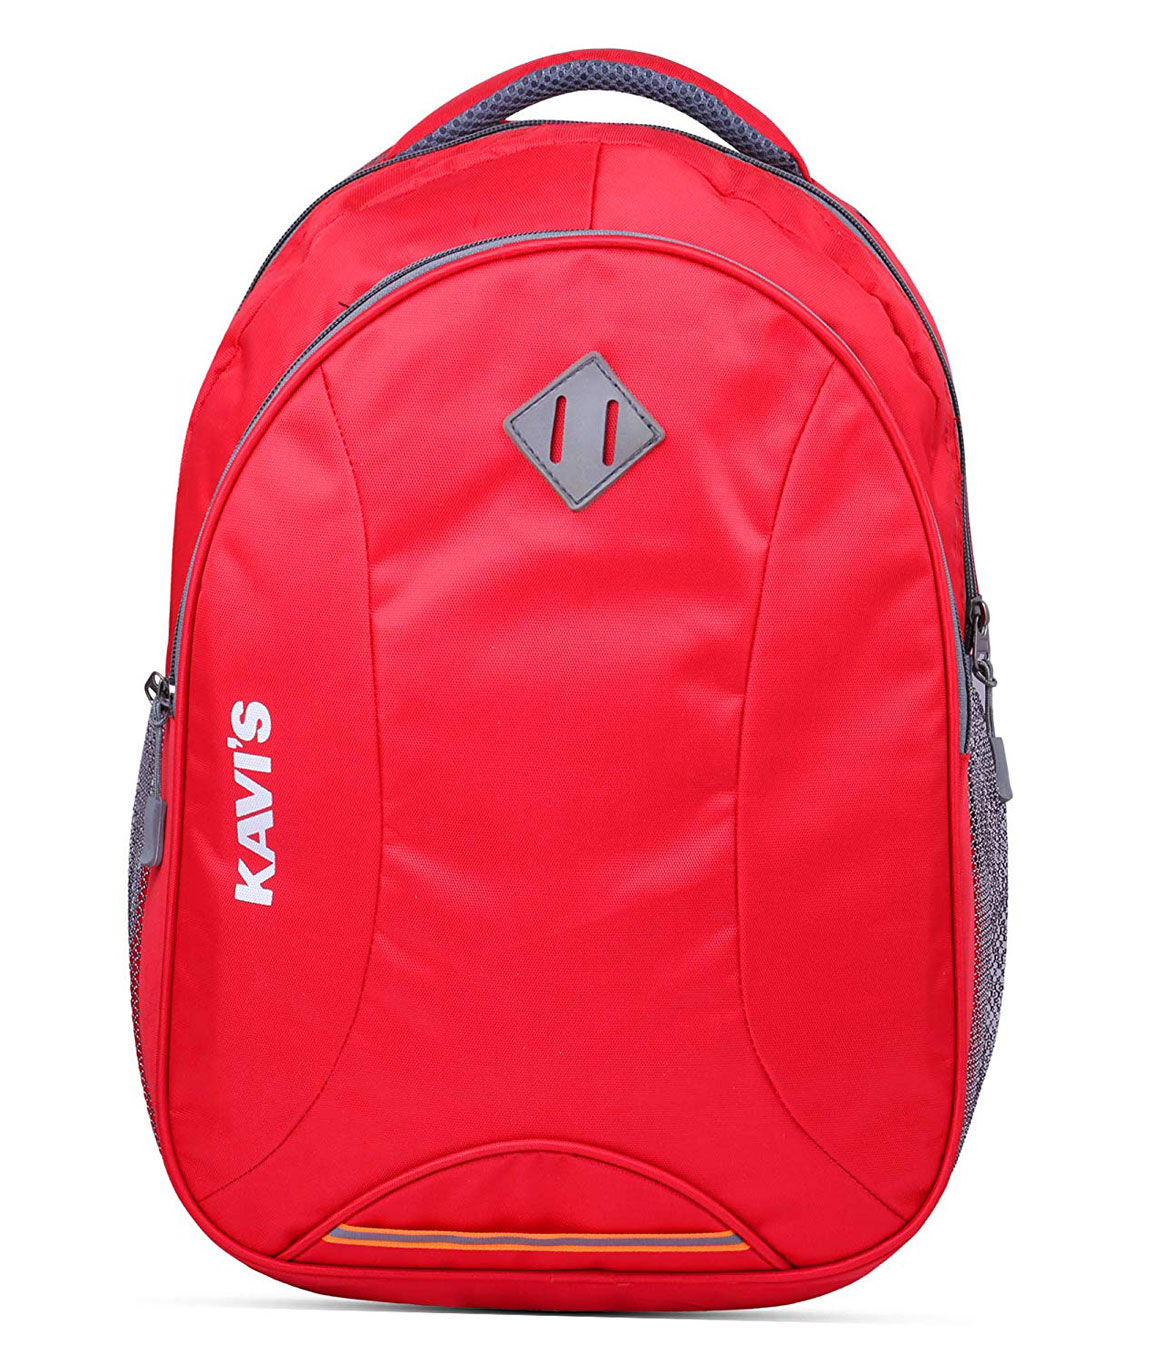 Kavi`s Casual Nylon Polyester 17-inch Multifunctional Laptop Backpack for Girls and Boys with Rain Cover (Red)